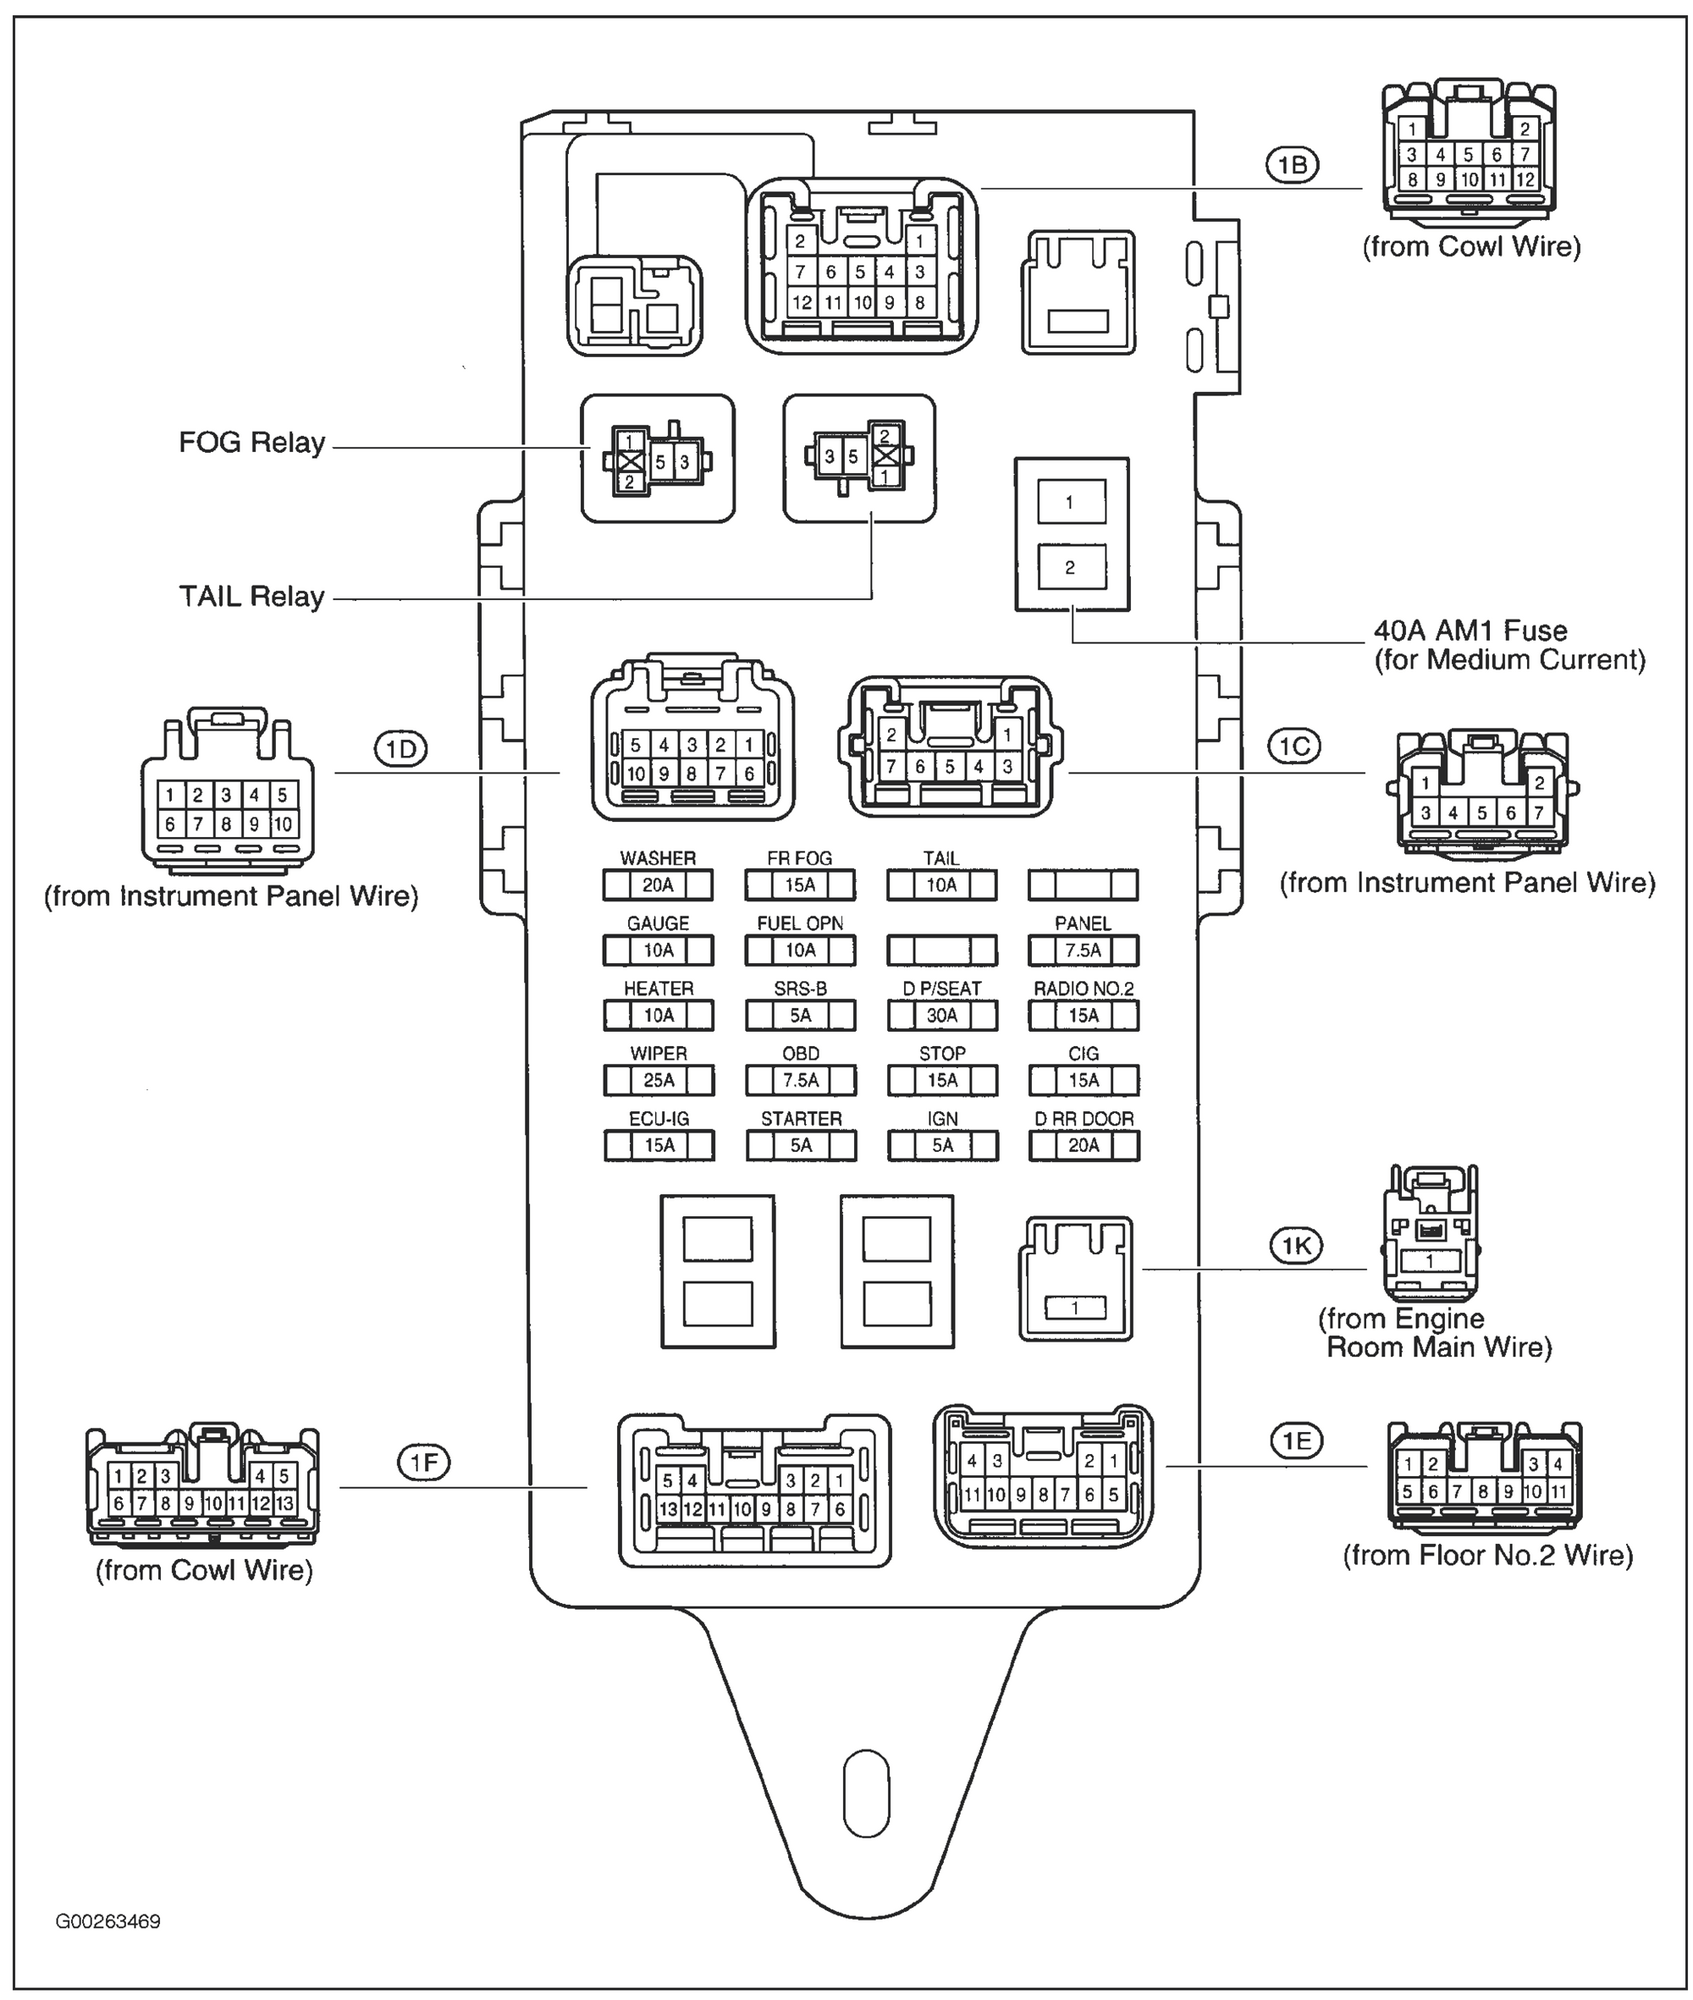 hight resolution of fuse box 1999 lexus es300 wiring diagram article review mix fuse box 98 lexus es300 wiring